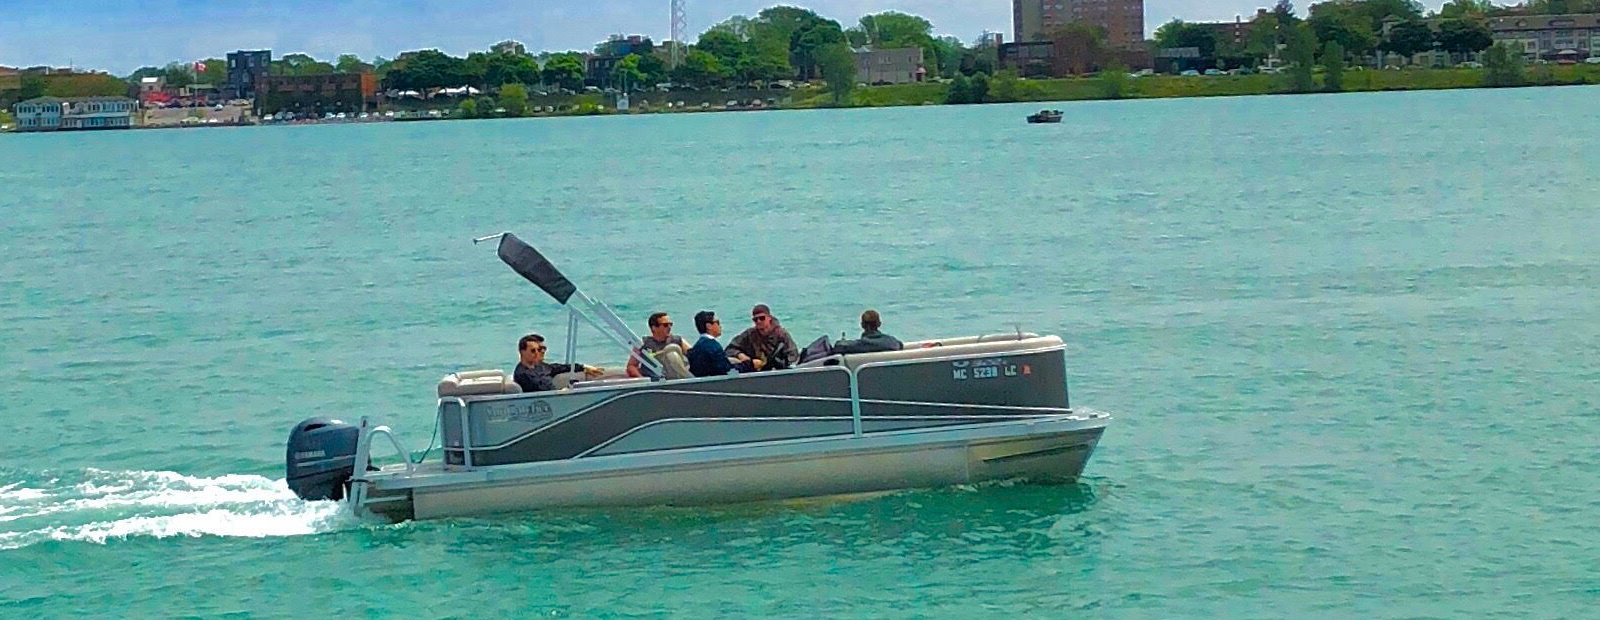 Entertain family and friends on the water this summer by renting a boat. <span class='image-credits'>Courtesy Michigan Boat Rentals</span>